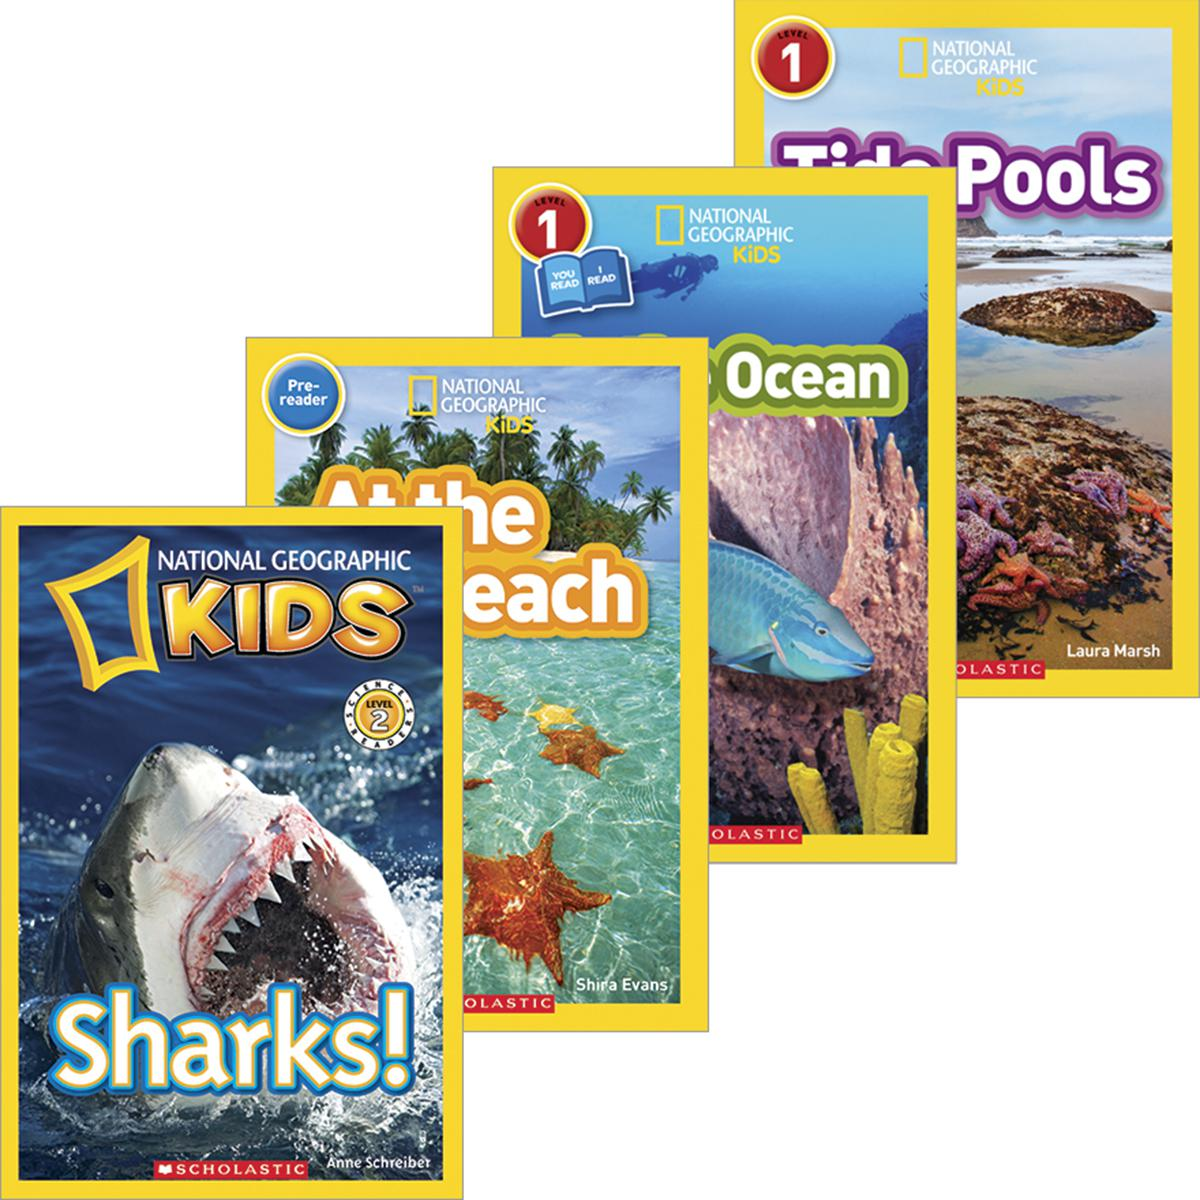 National Geographic Kids: Under the Sea Pack